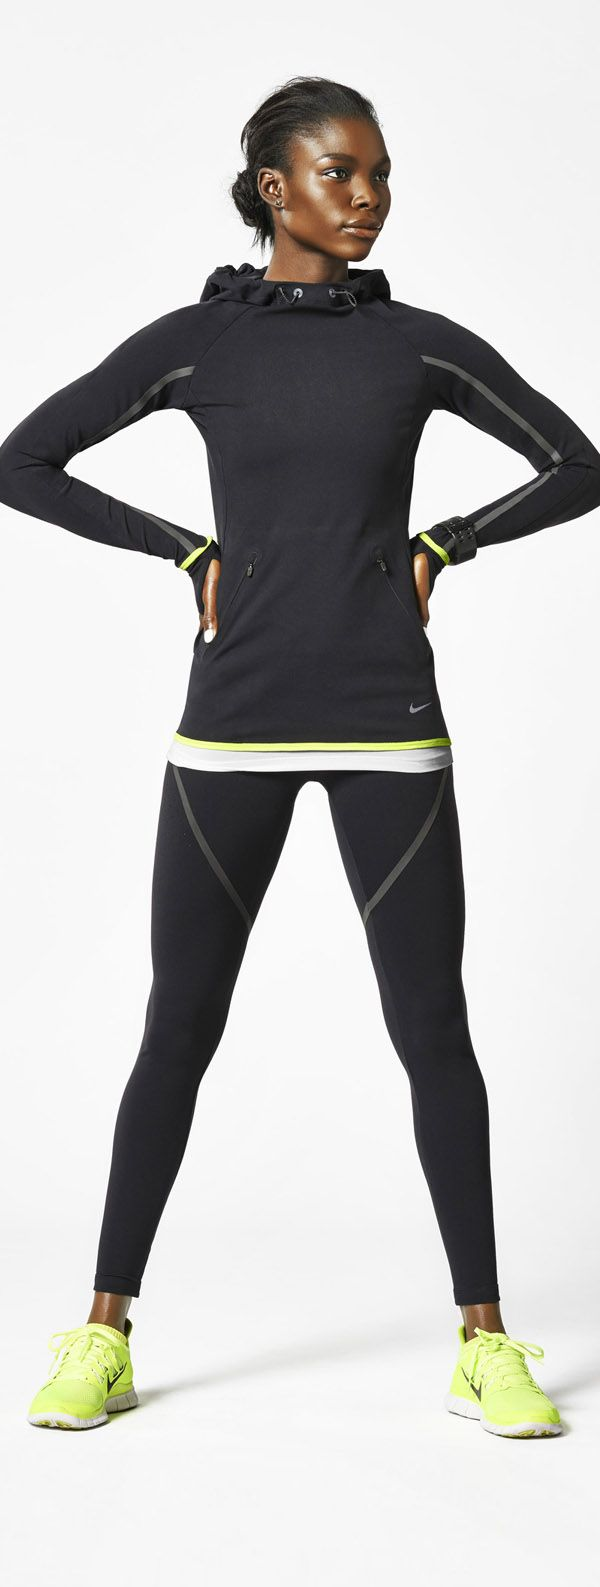 Black top and leggings with neon shoes #Nike #running #style